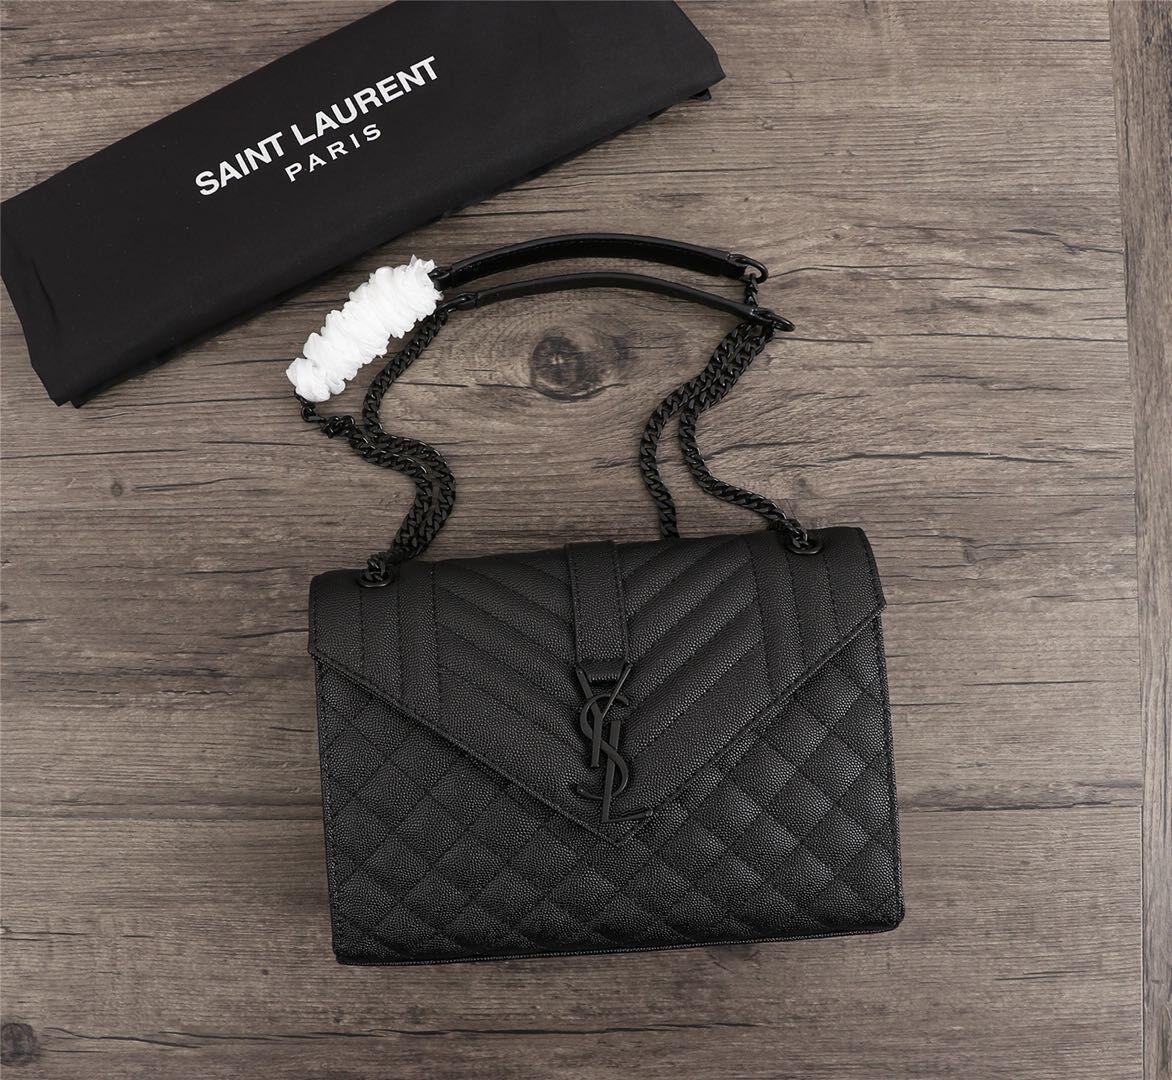 SAINT LAURENT Medium satchel 487206 black